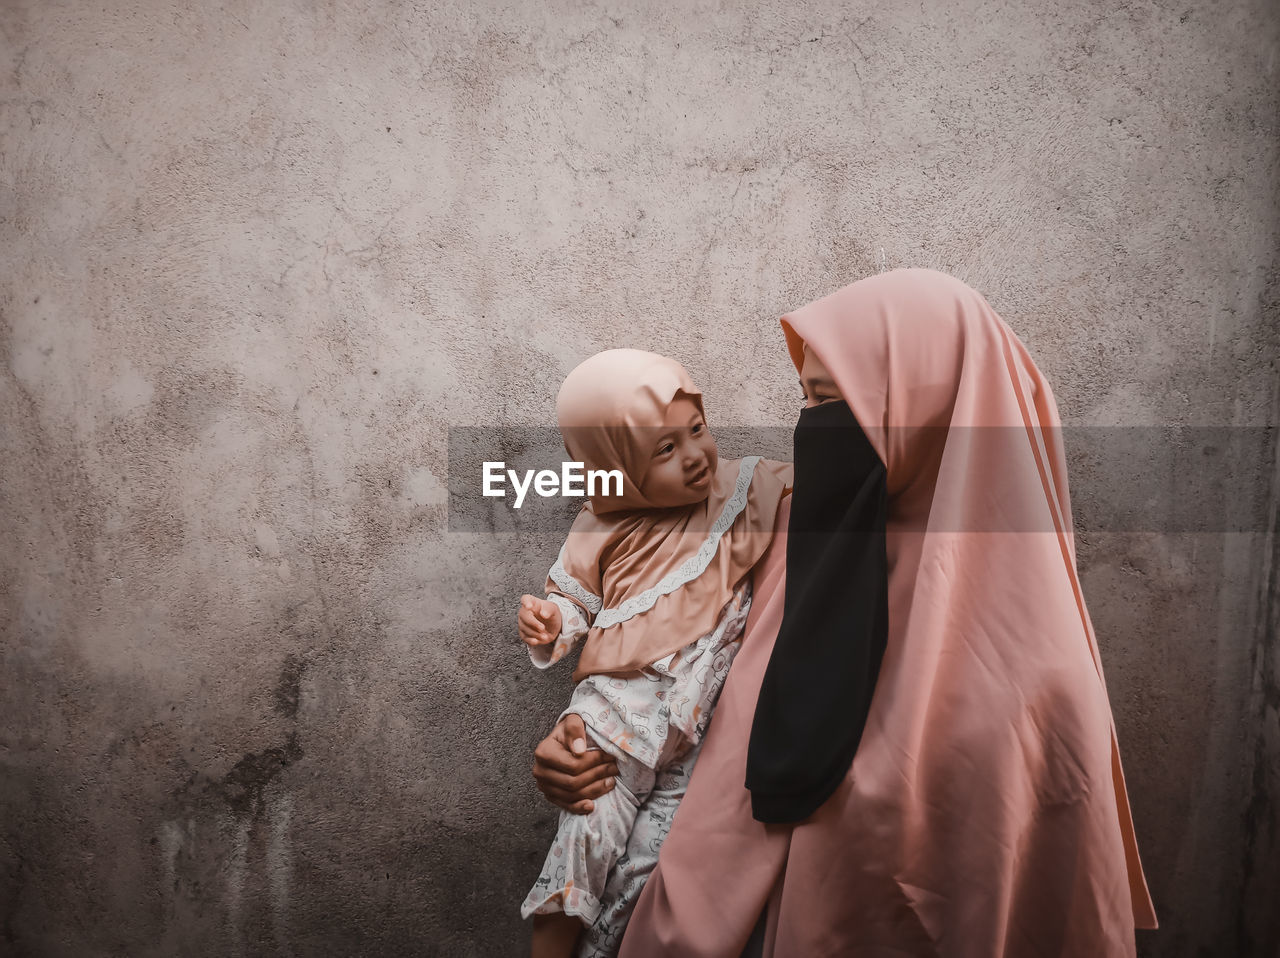 The gaze of love between a mother and a happy child